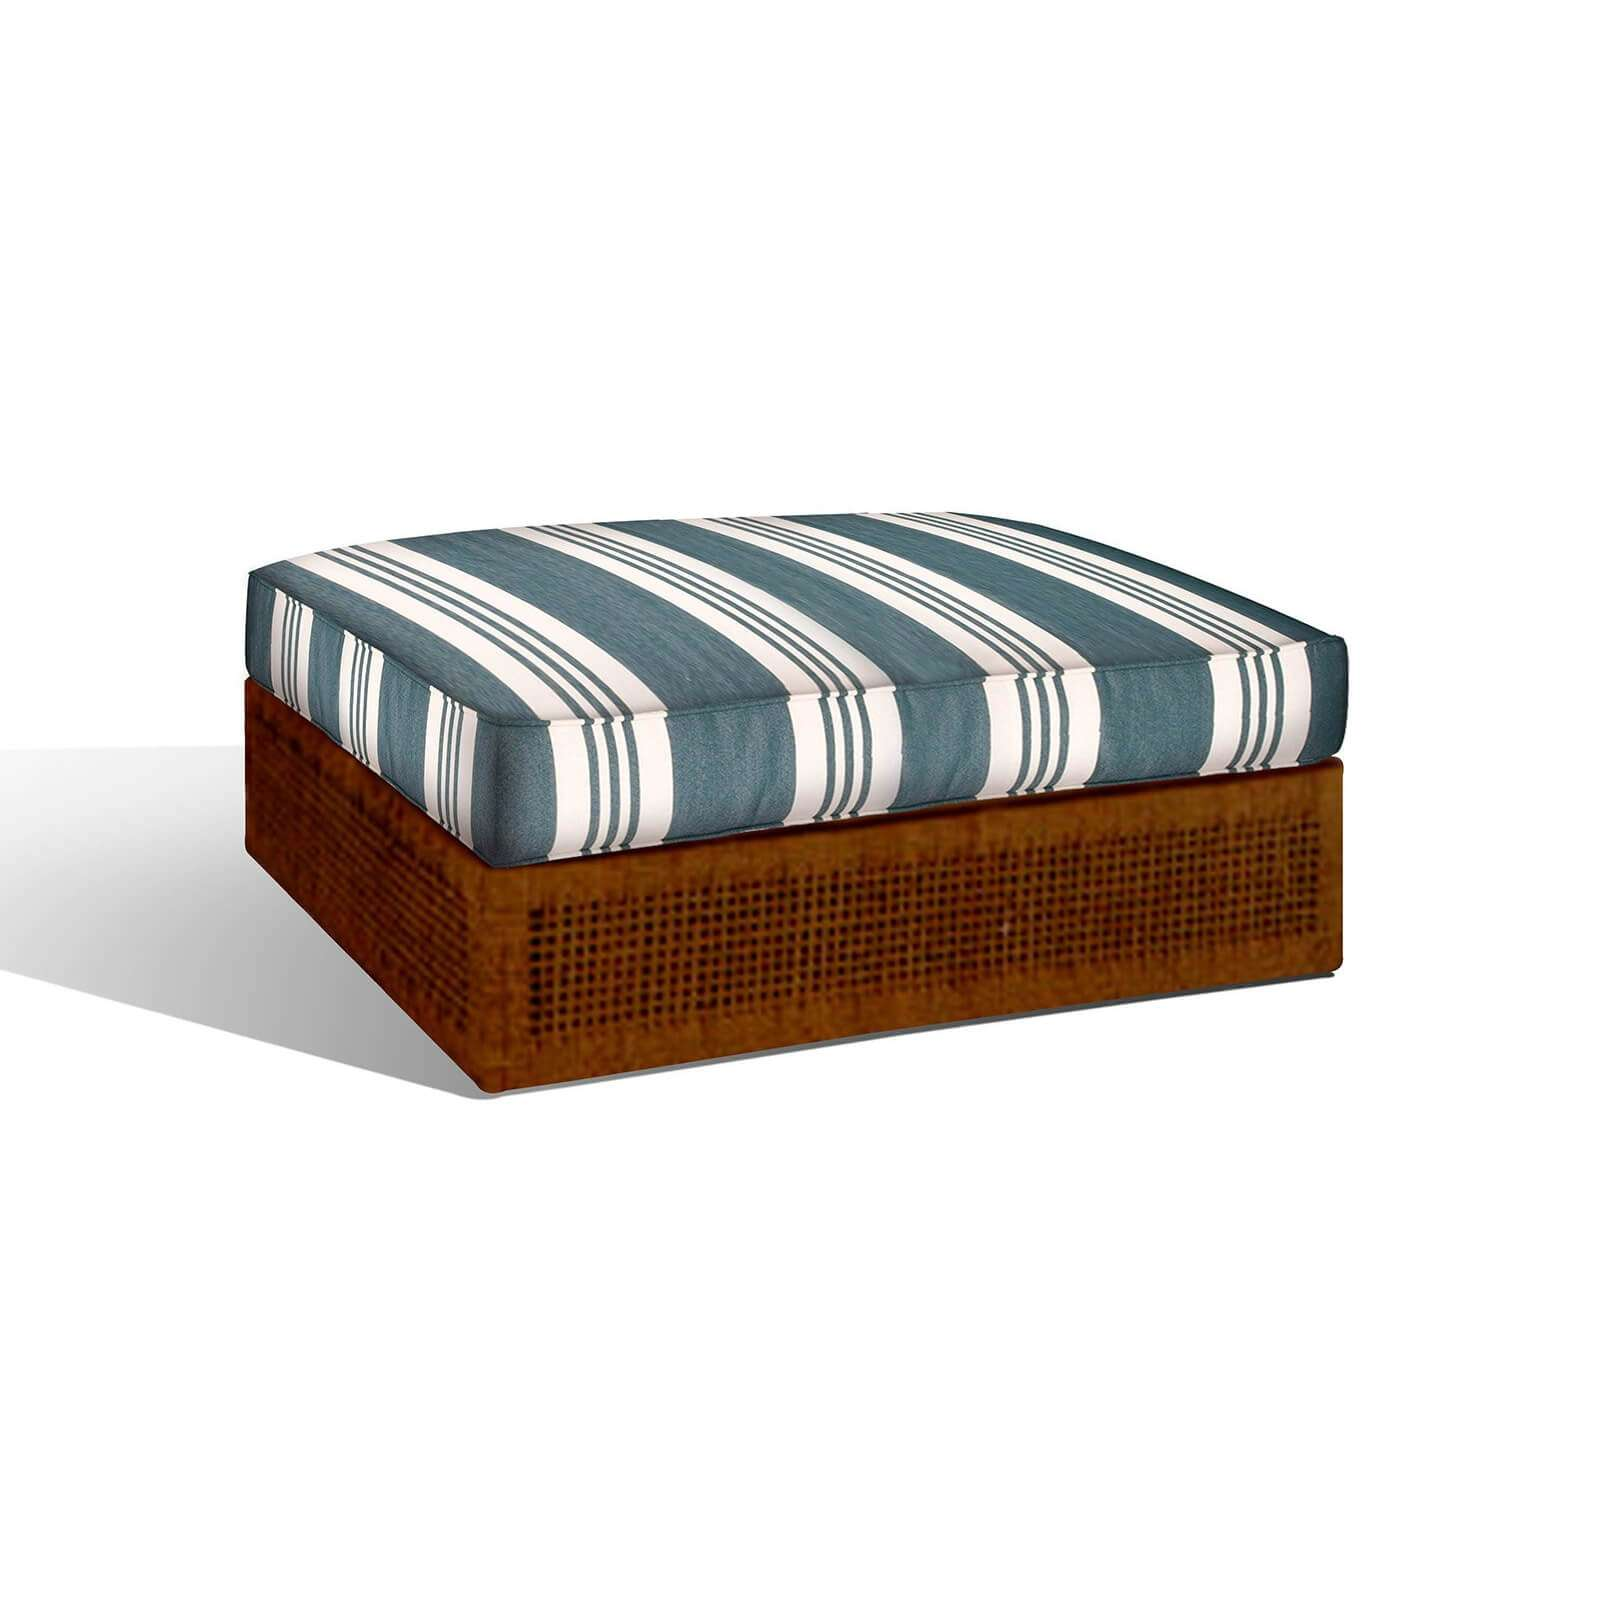 HARBOR ISLAND OTTOMAN 1 - STUART MEMBERY HOME COLLECTION